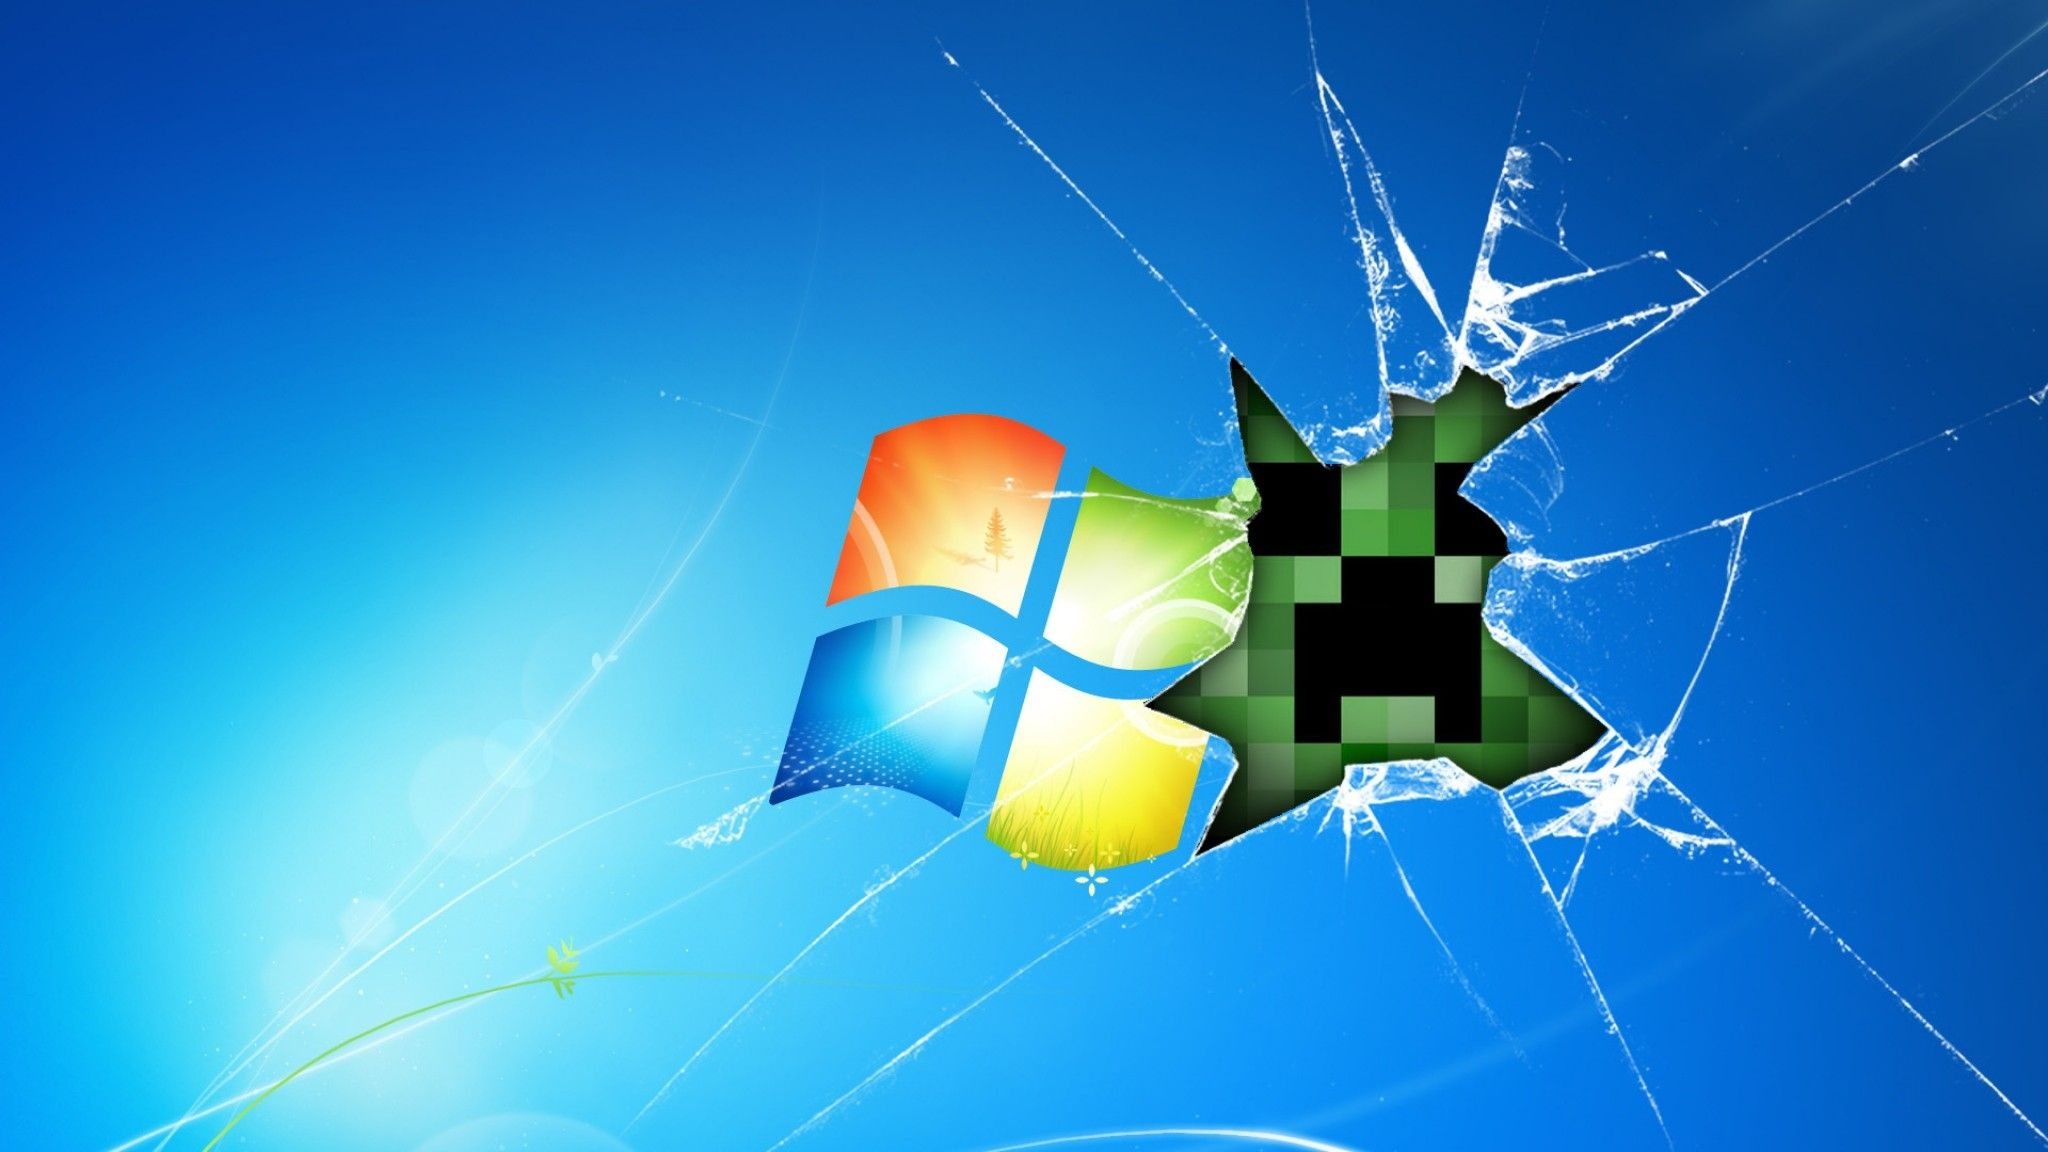 2048x1152 Preview Wallpaper Windows Minecraft Game Glass